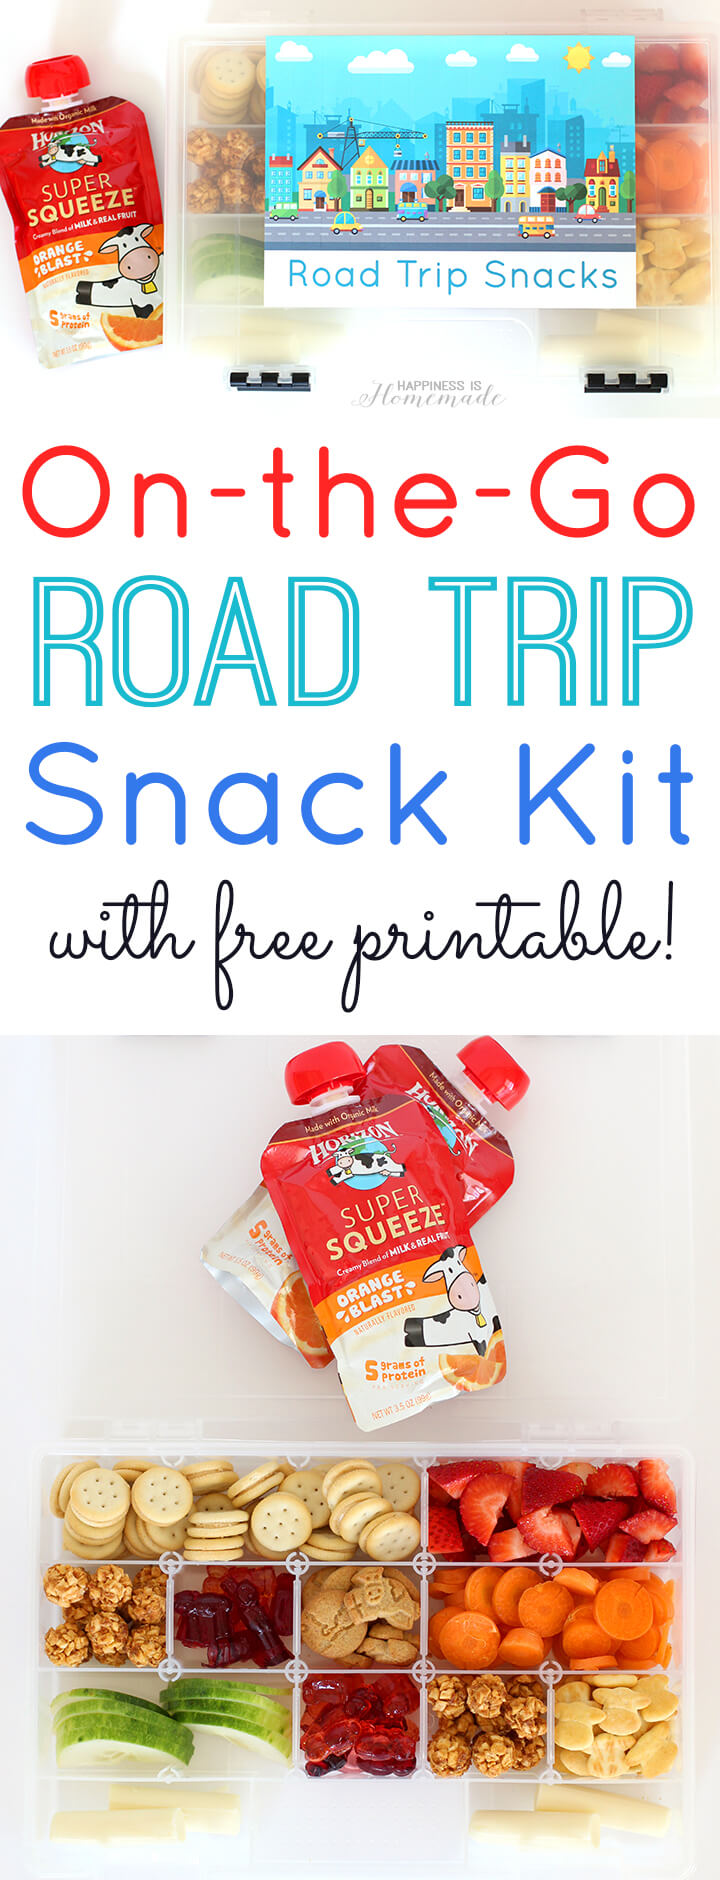 On the Go Road Trip Snack Kit